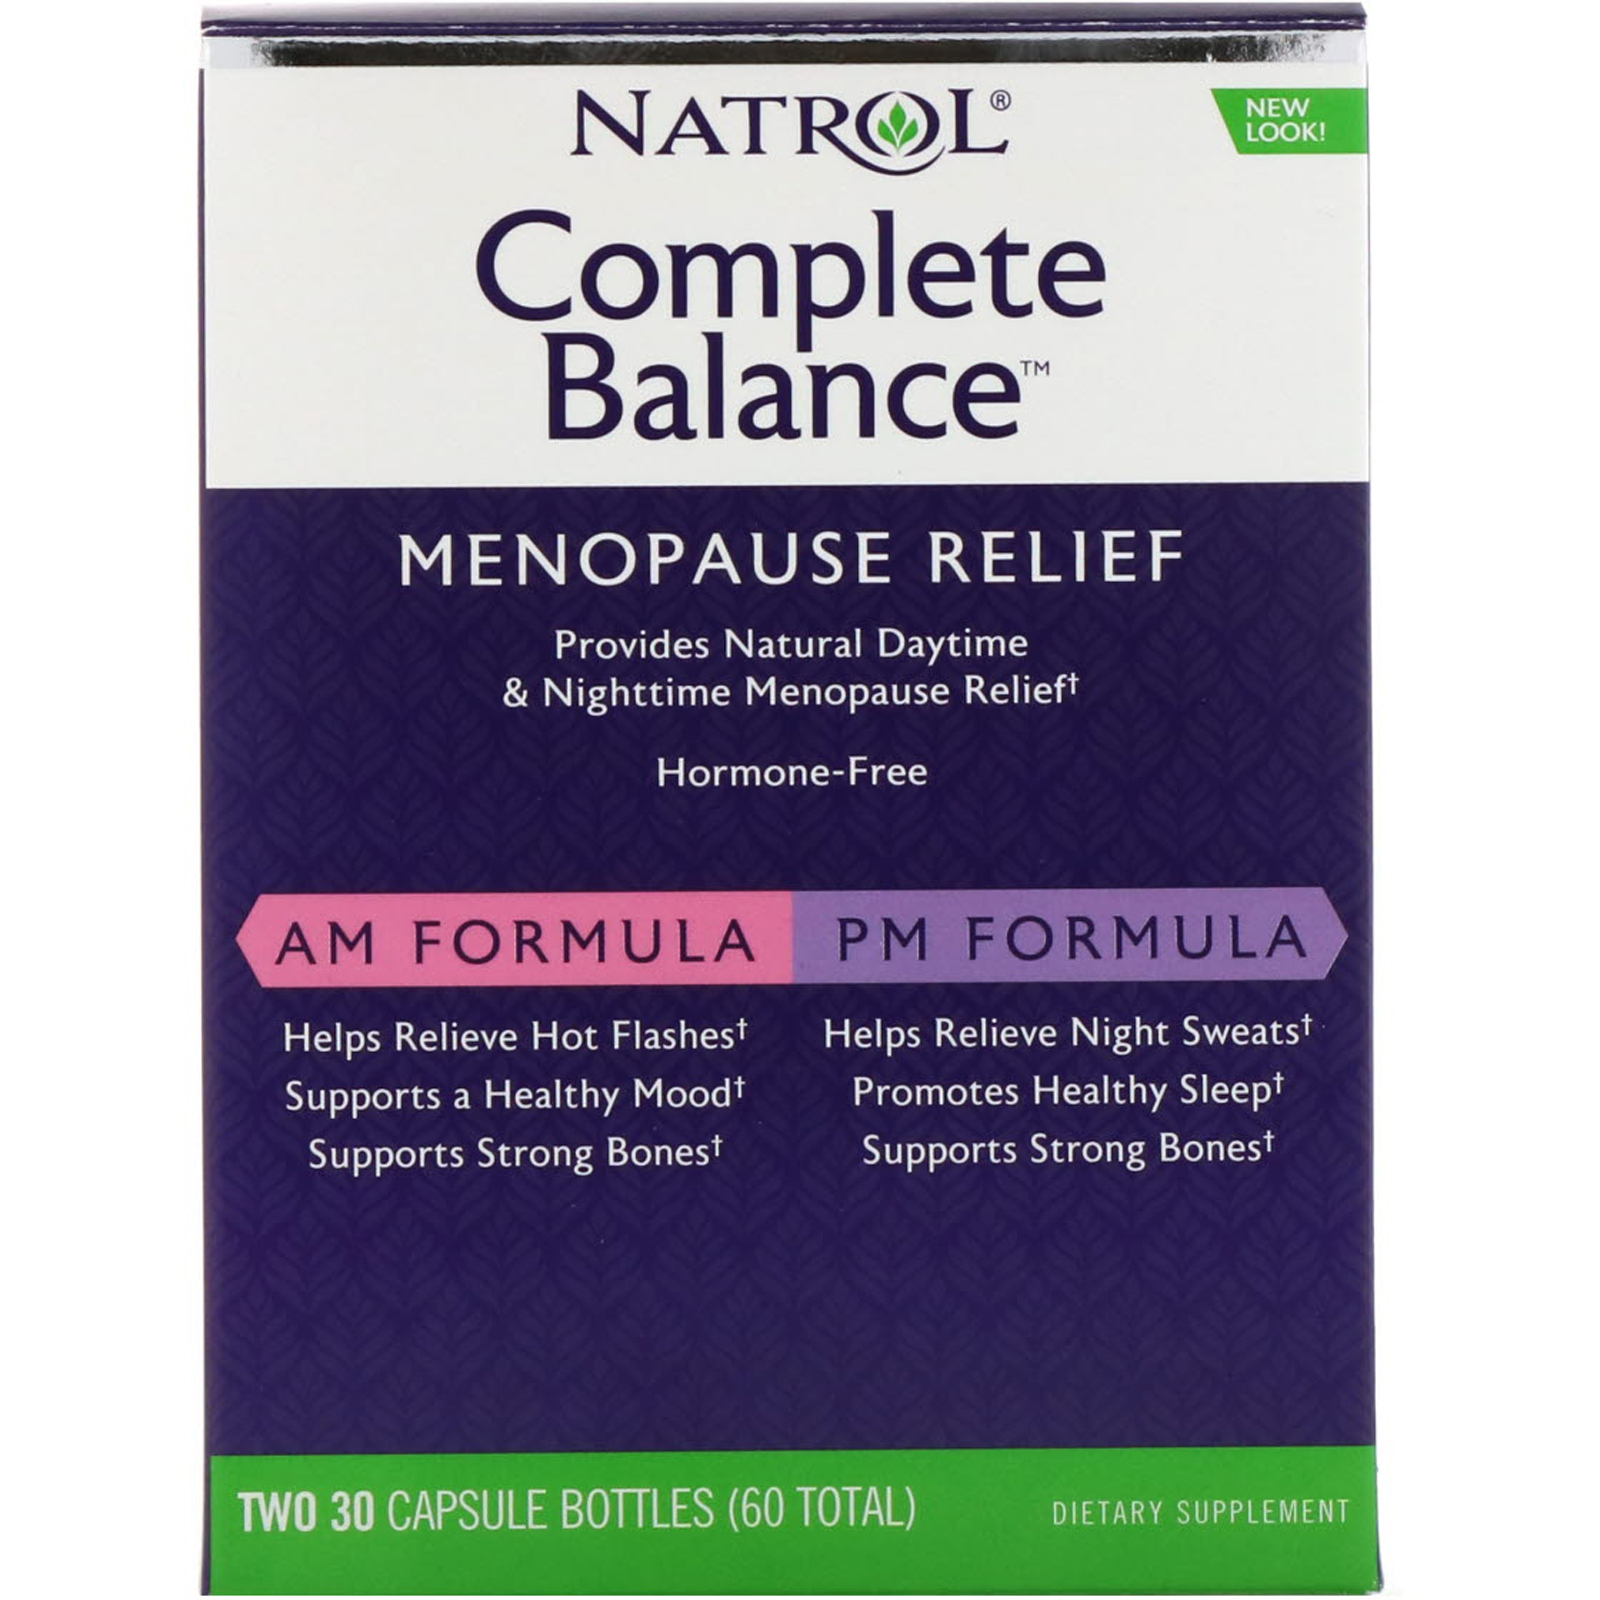 Am Pm Natrol Complete Balance Menopause Relief Am Pm Two Bottles 30